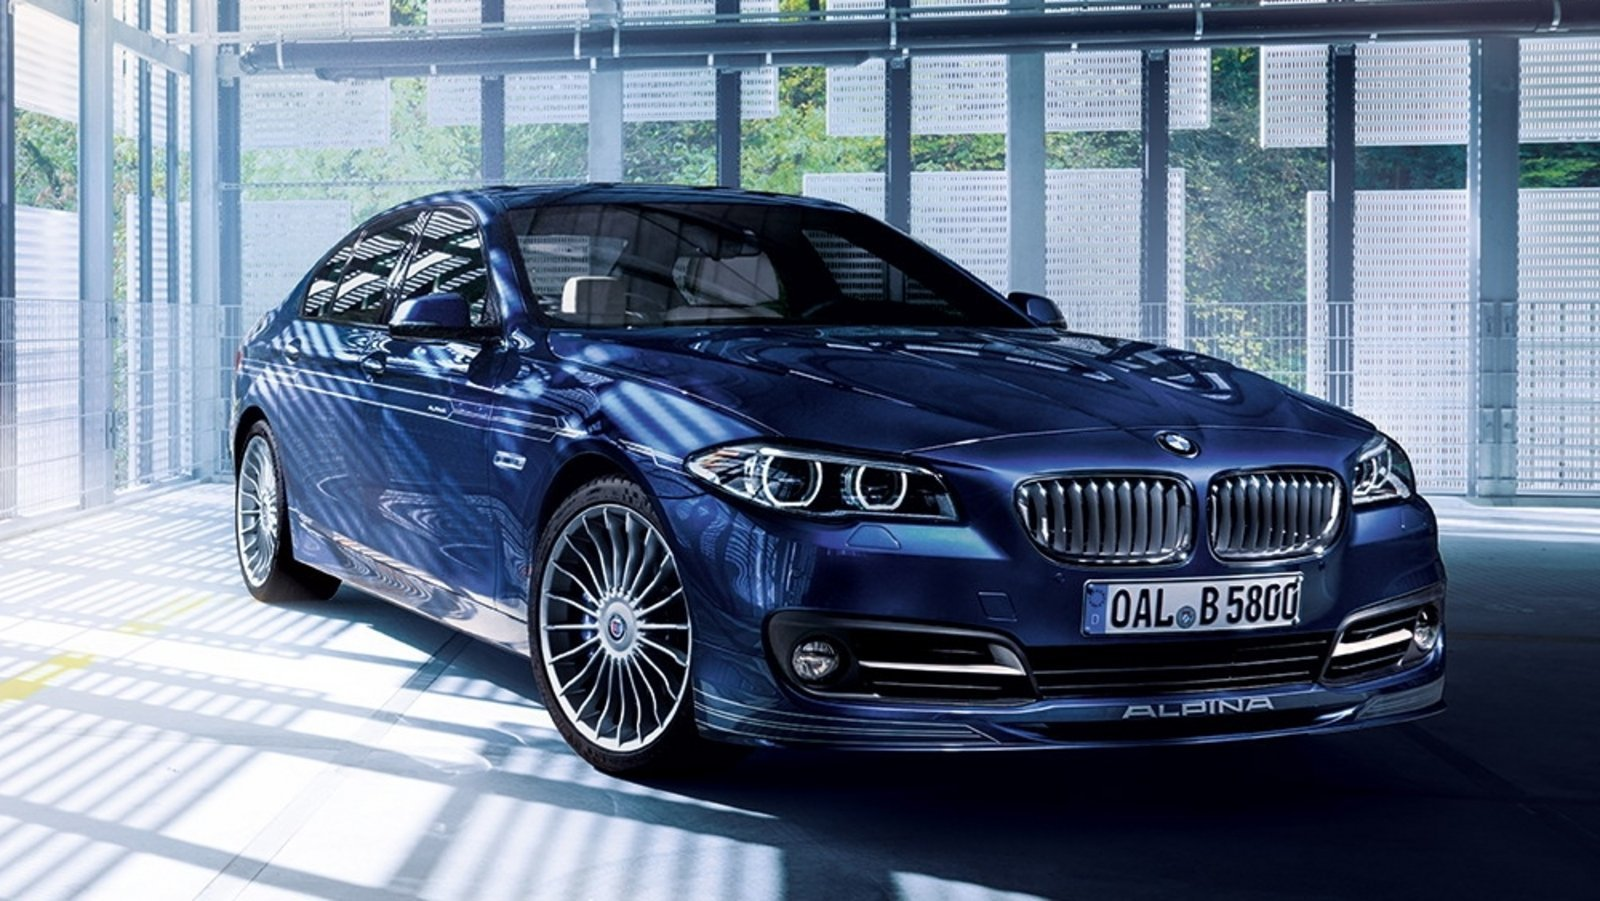 Latest 2016 Bmw Alpina B5 Biturbo Review Top Speed Free Download